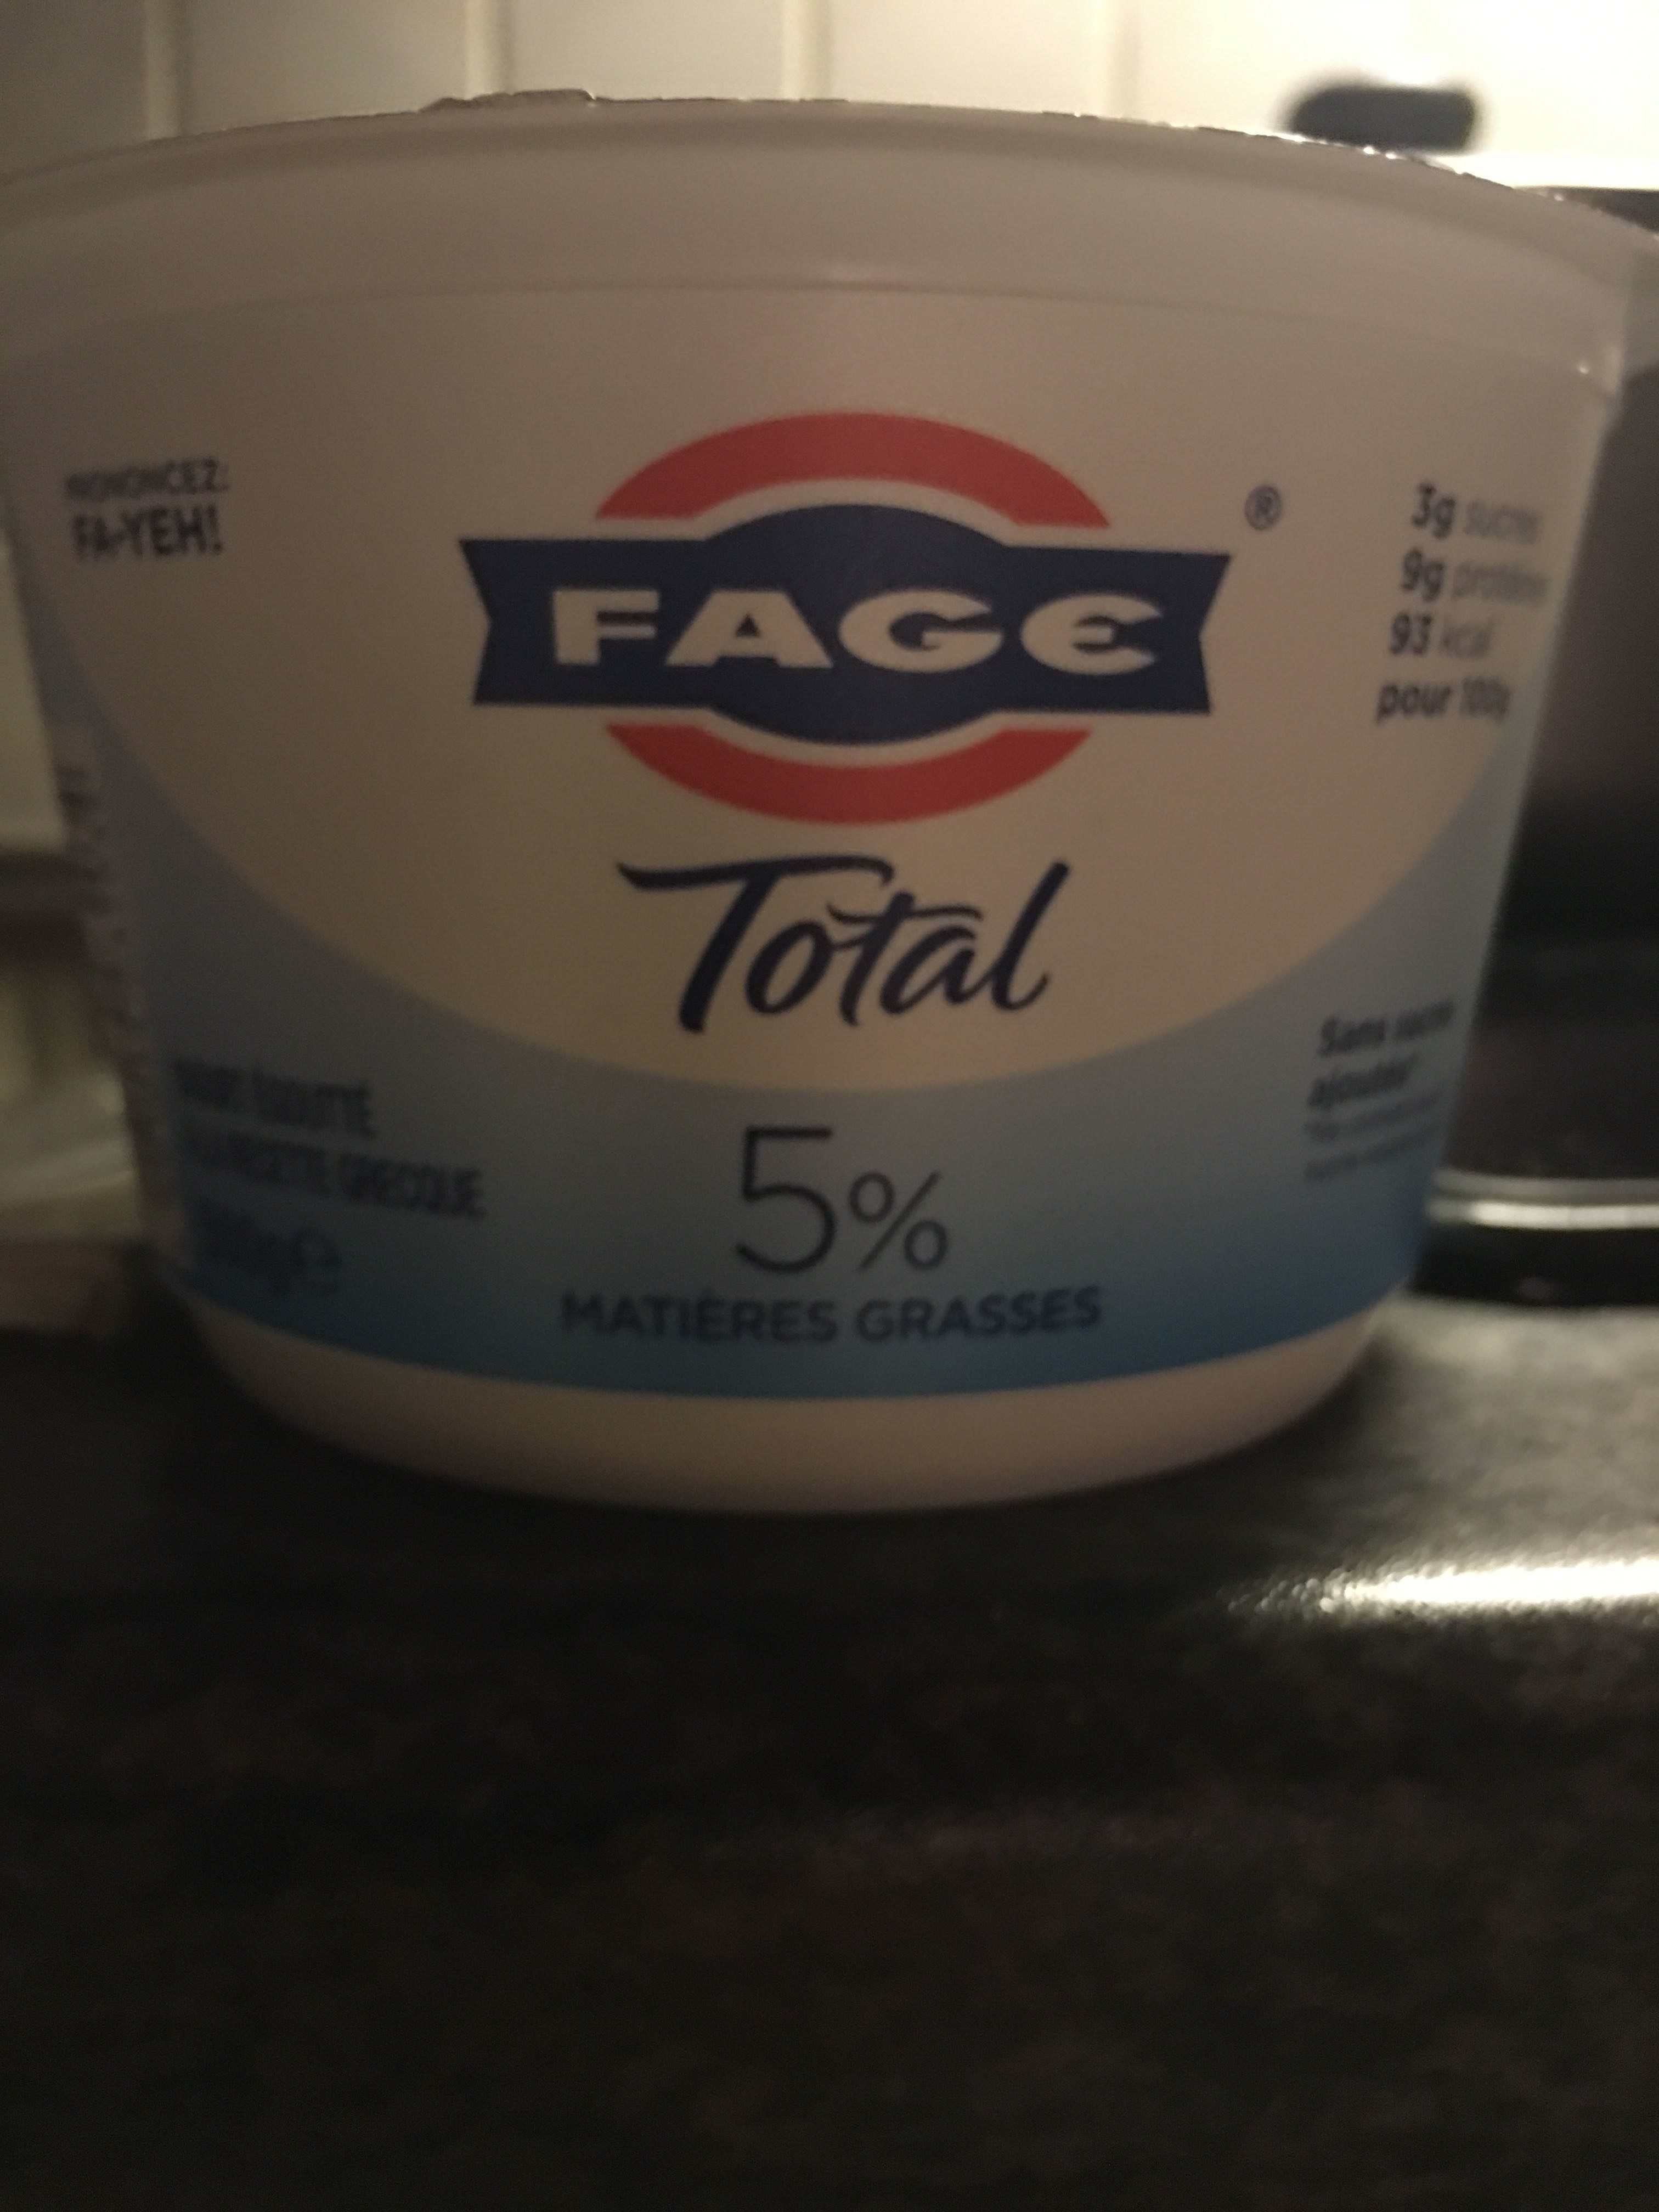 Yaourt Grec FAGE Total 5% - Product - fr